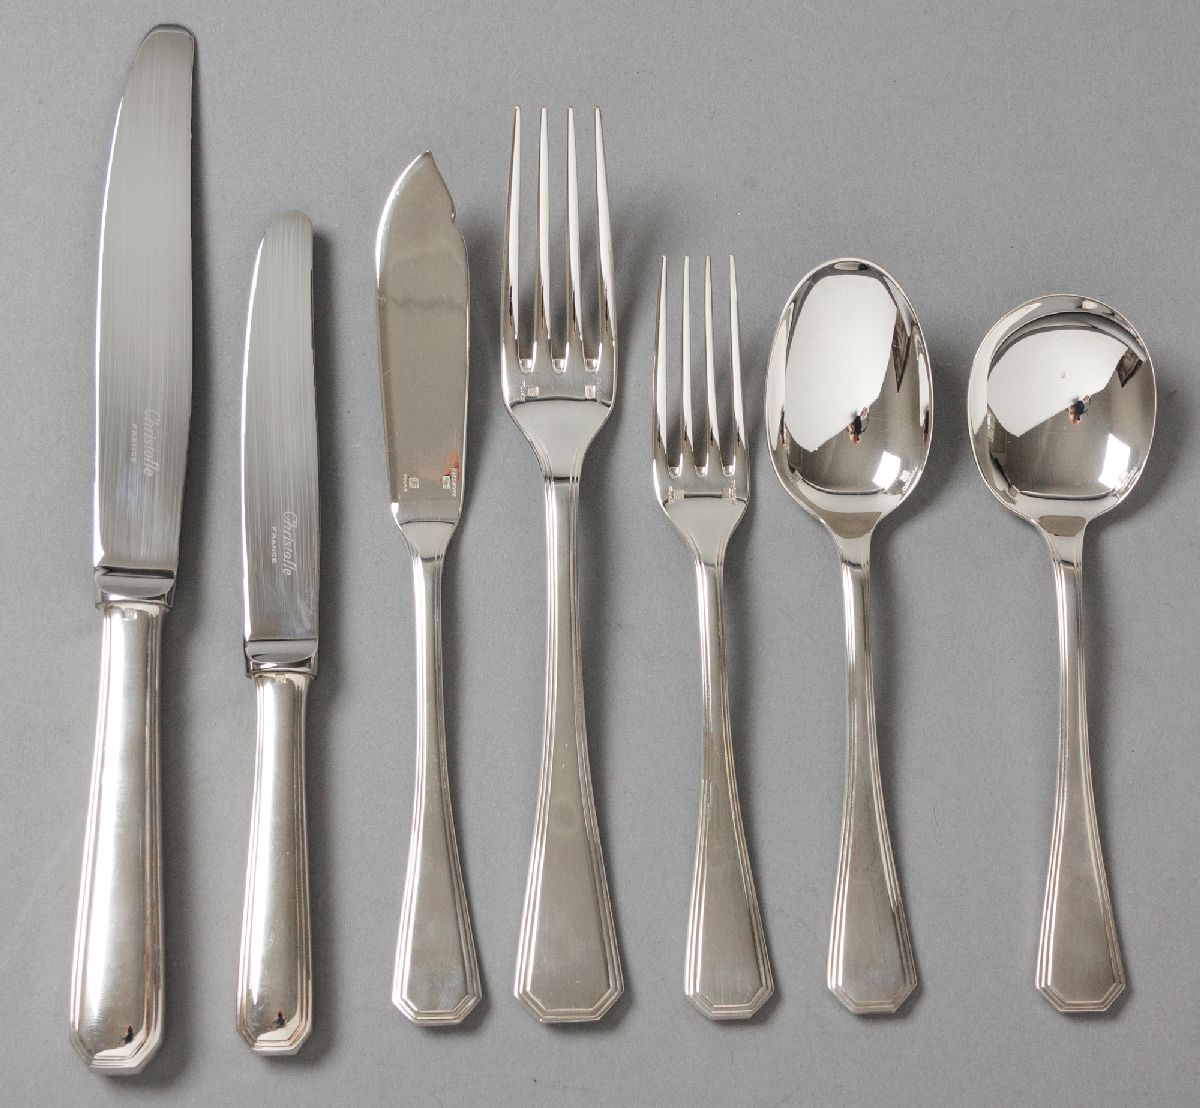 Lot 42 - AN EIGHT PLACE SILVERPLATE CHRISTOFLE CUTLERY SET, comprising: of 8 dinner knives, 8 dinner forks, 8